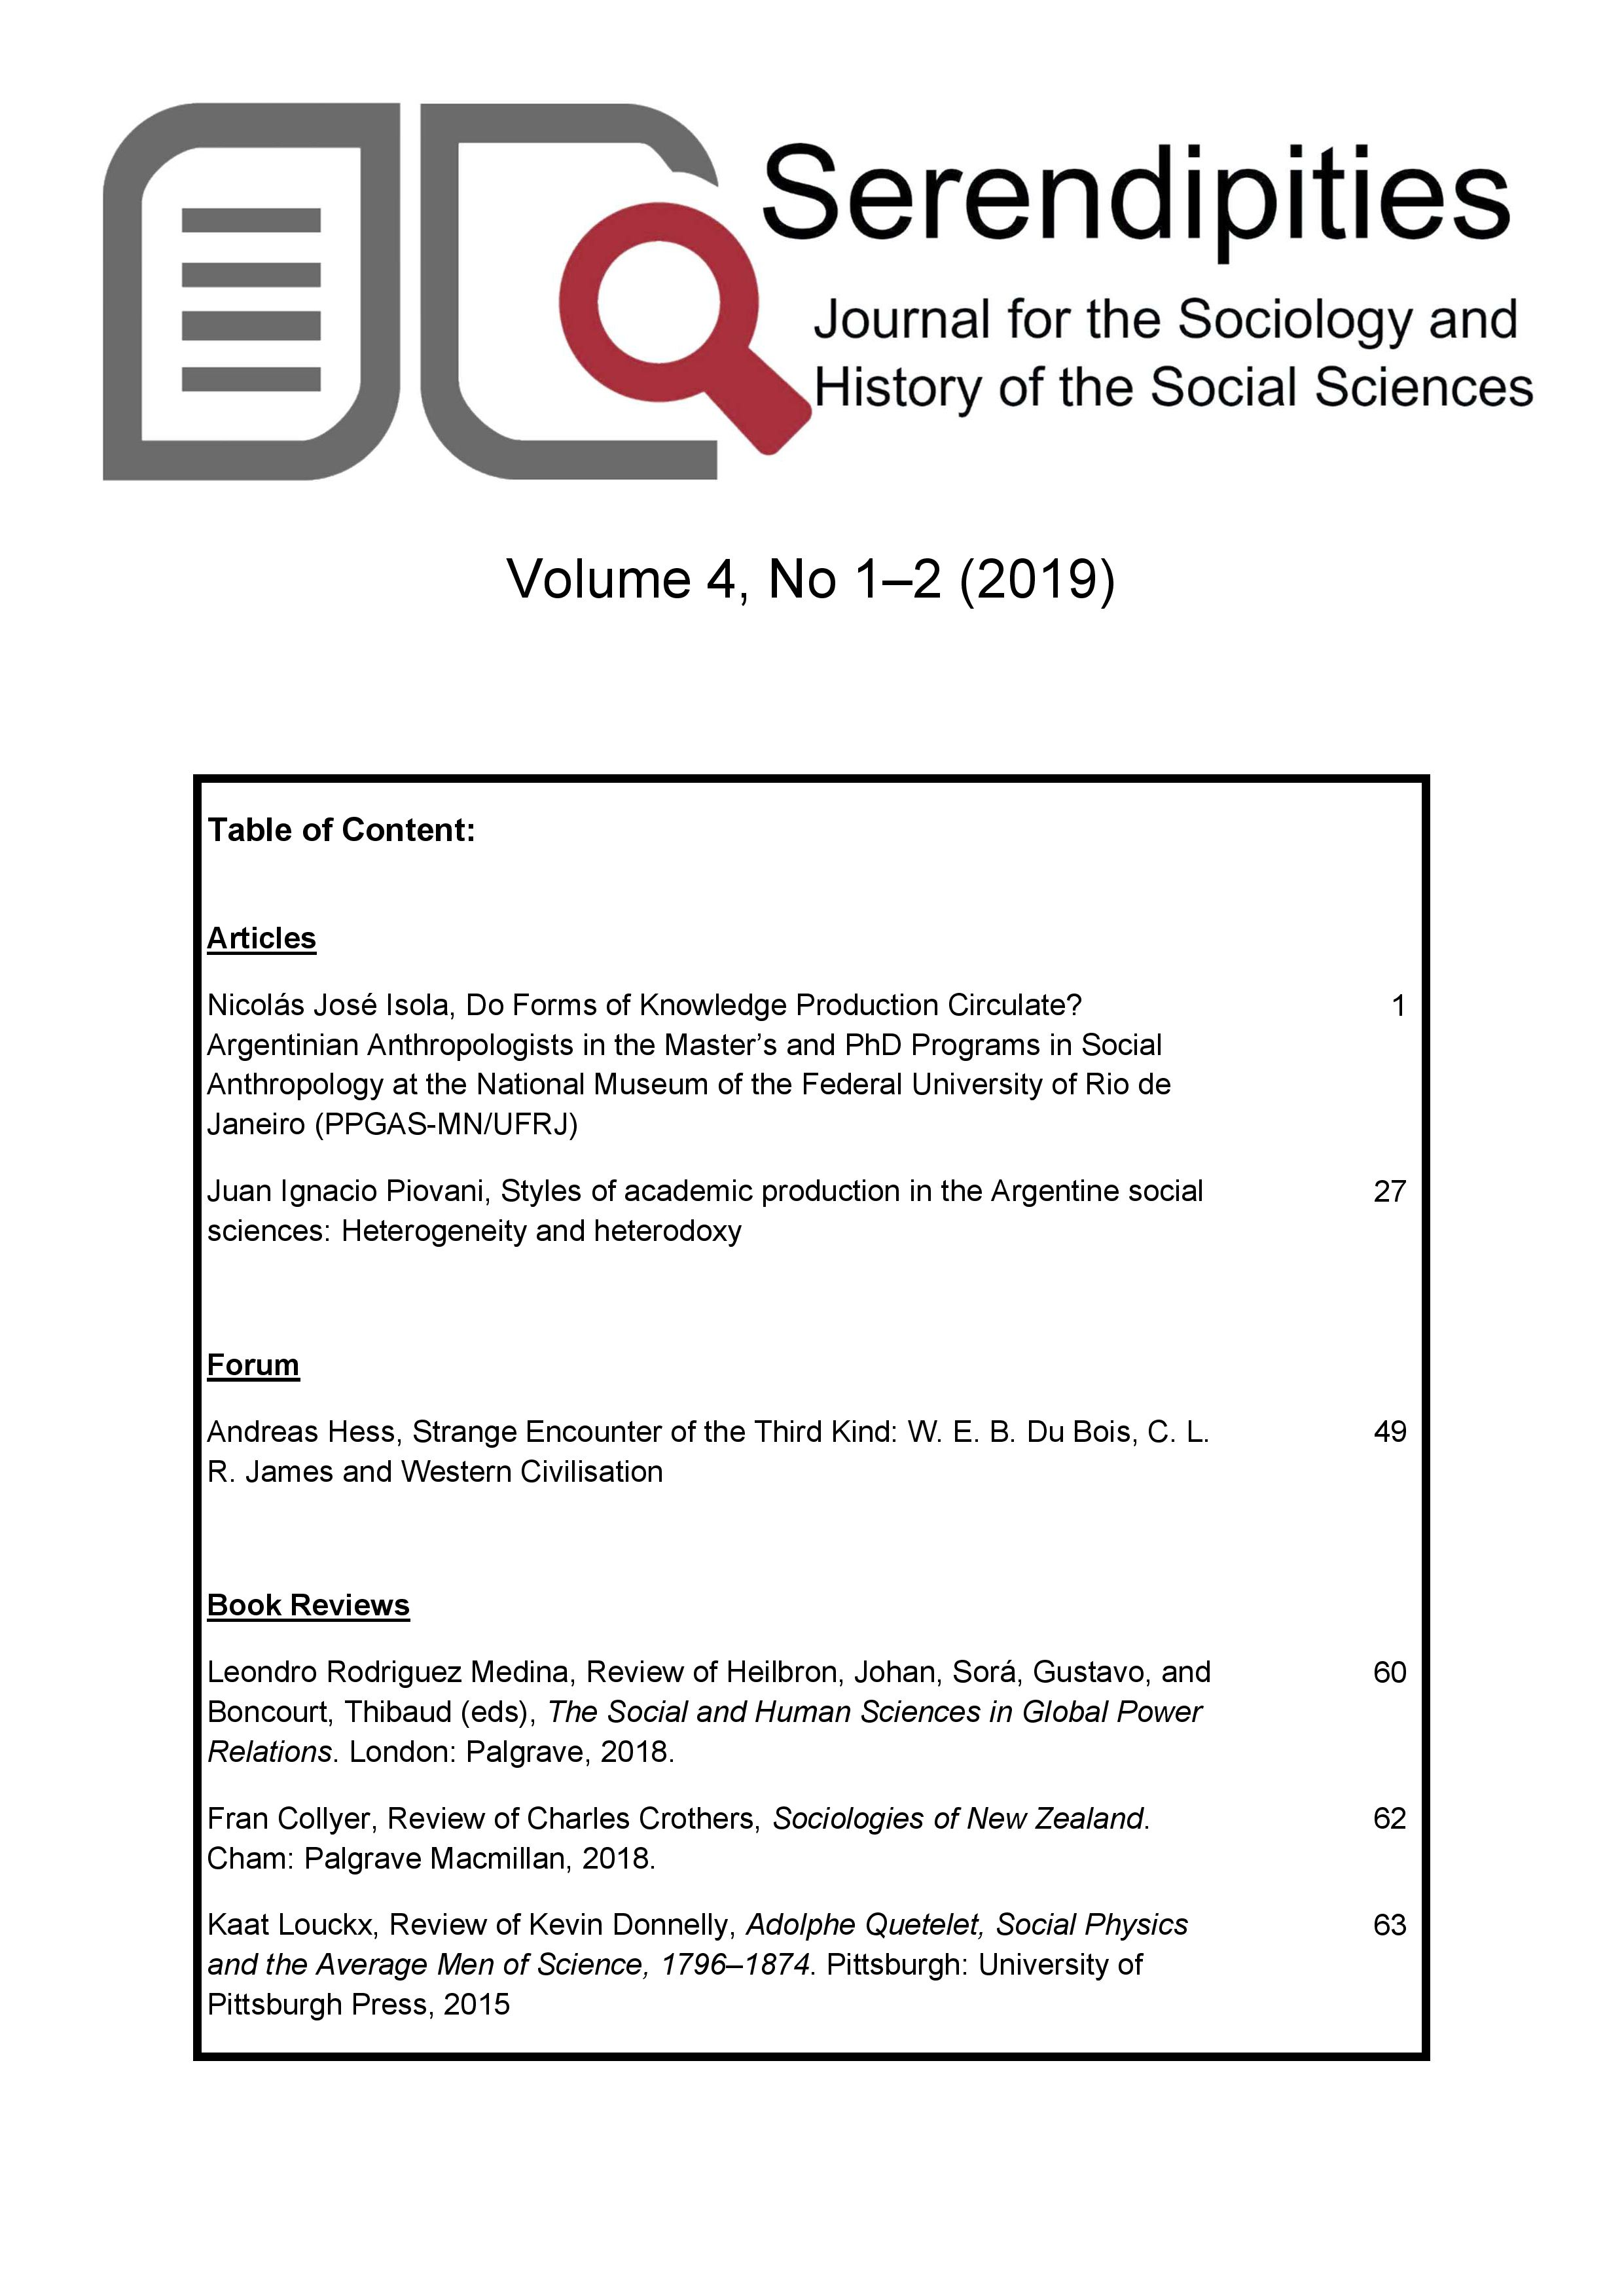 View Vol. 4 No. 1 (2019): Serendipities. Journal for the Sociology and History of the Social Sciences